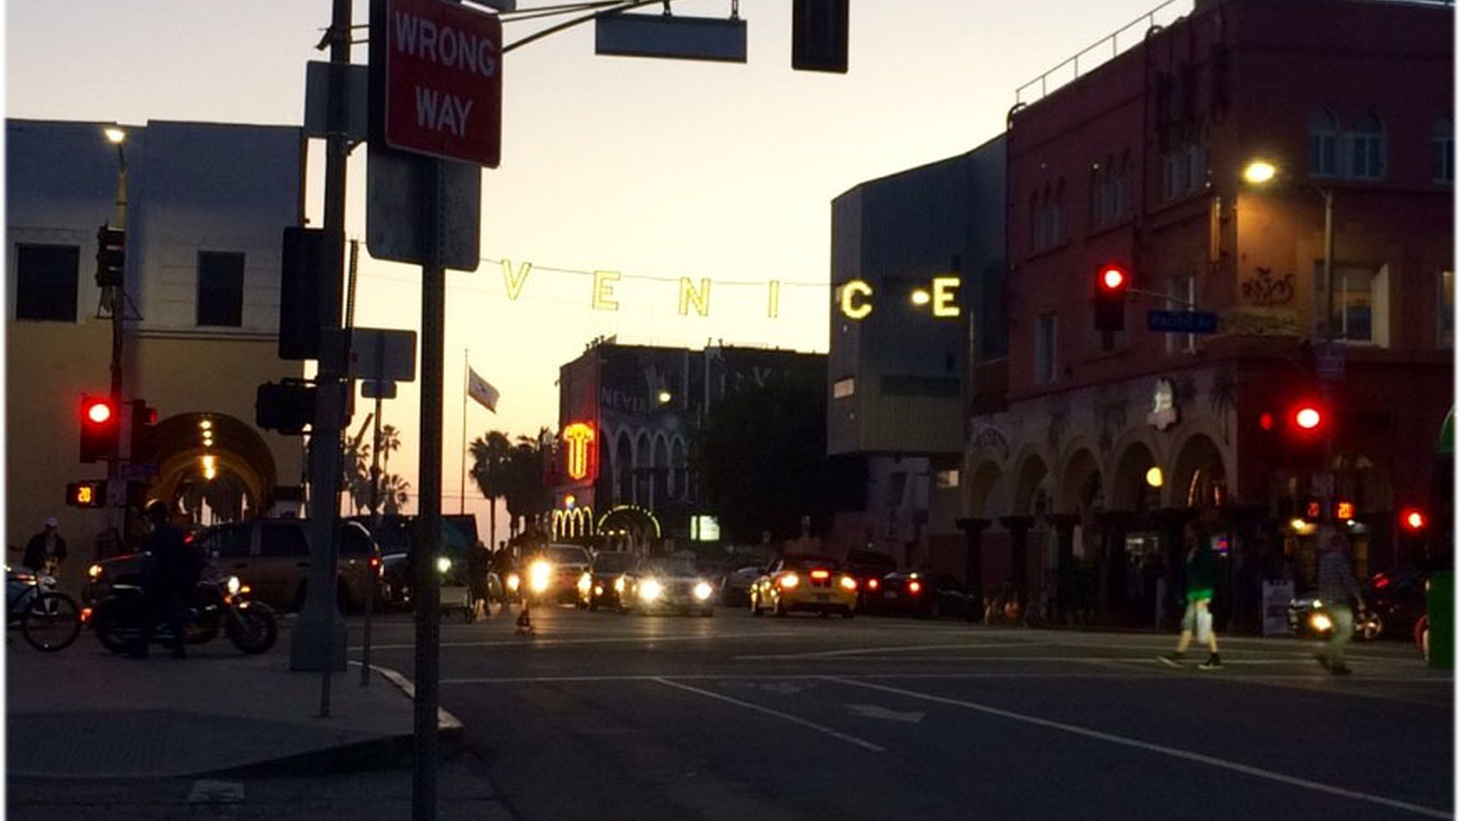 The many sounds of the lively Venice Boardwalk have been a lifelong soundtrack.